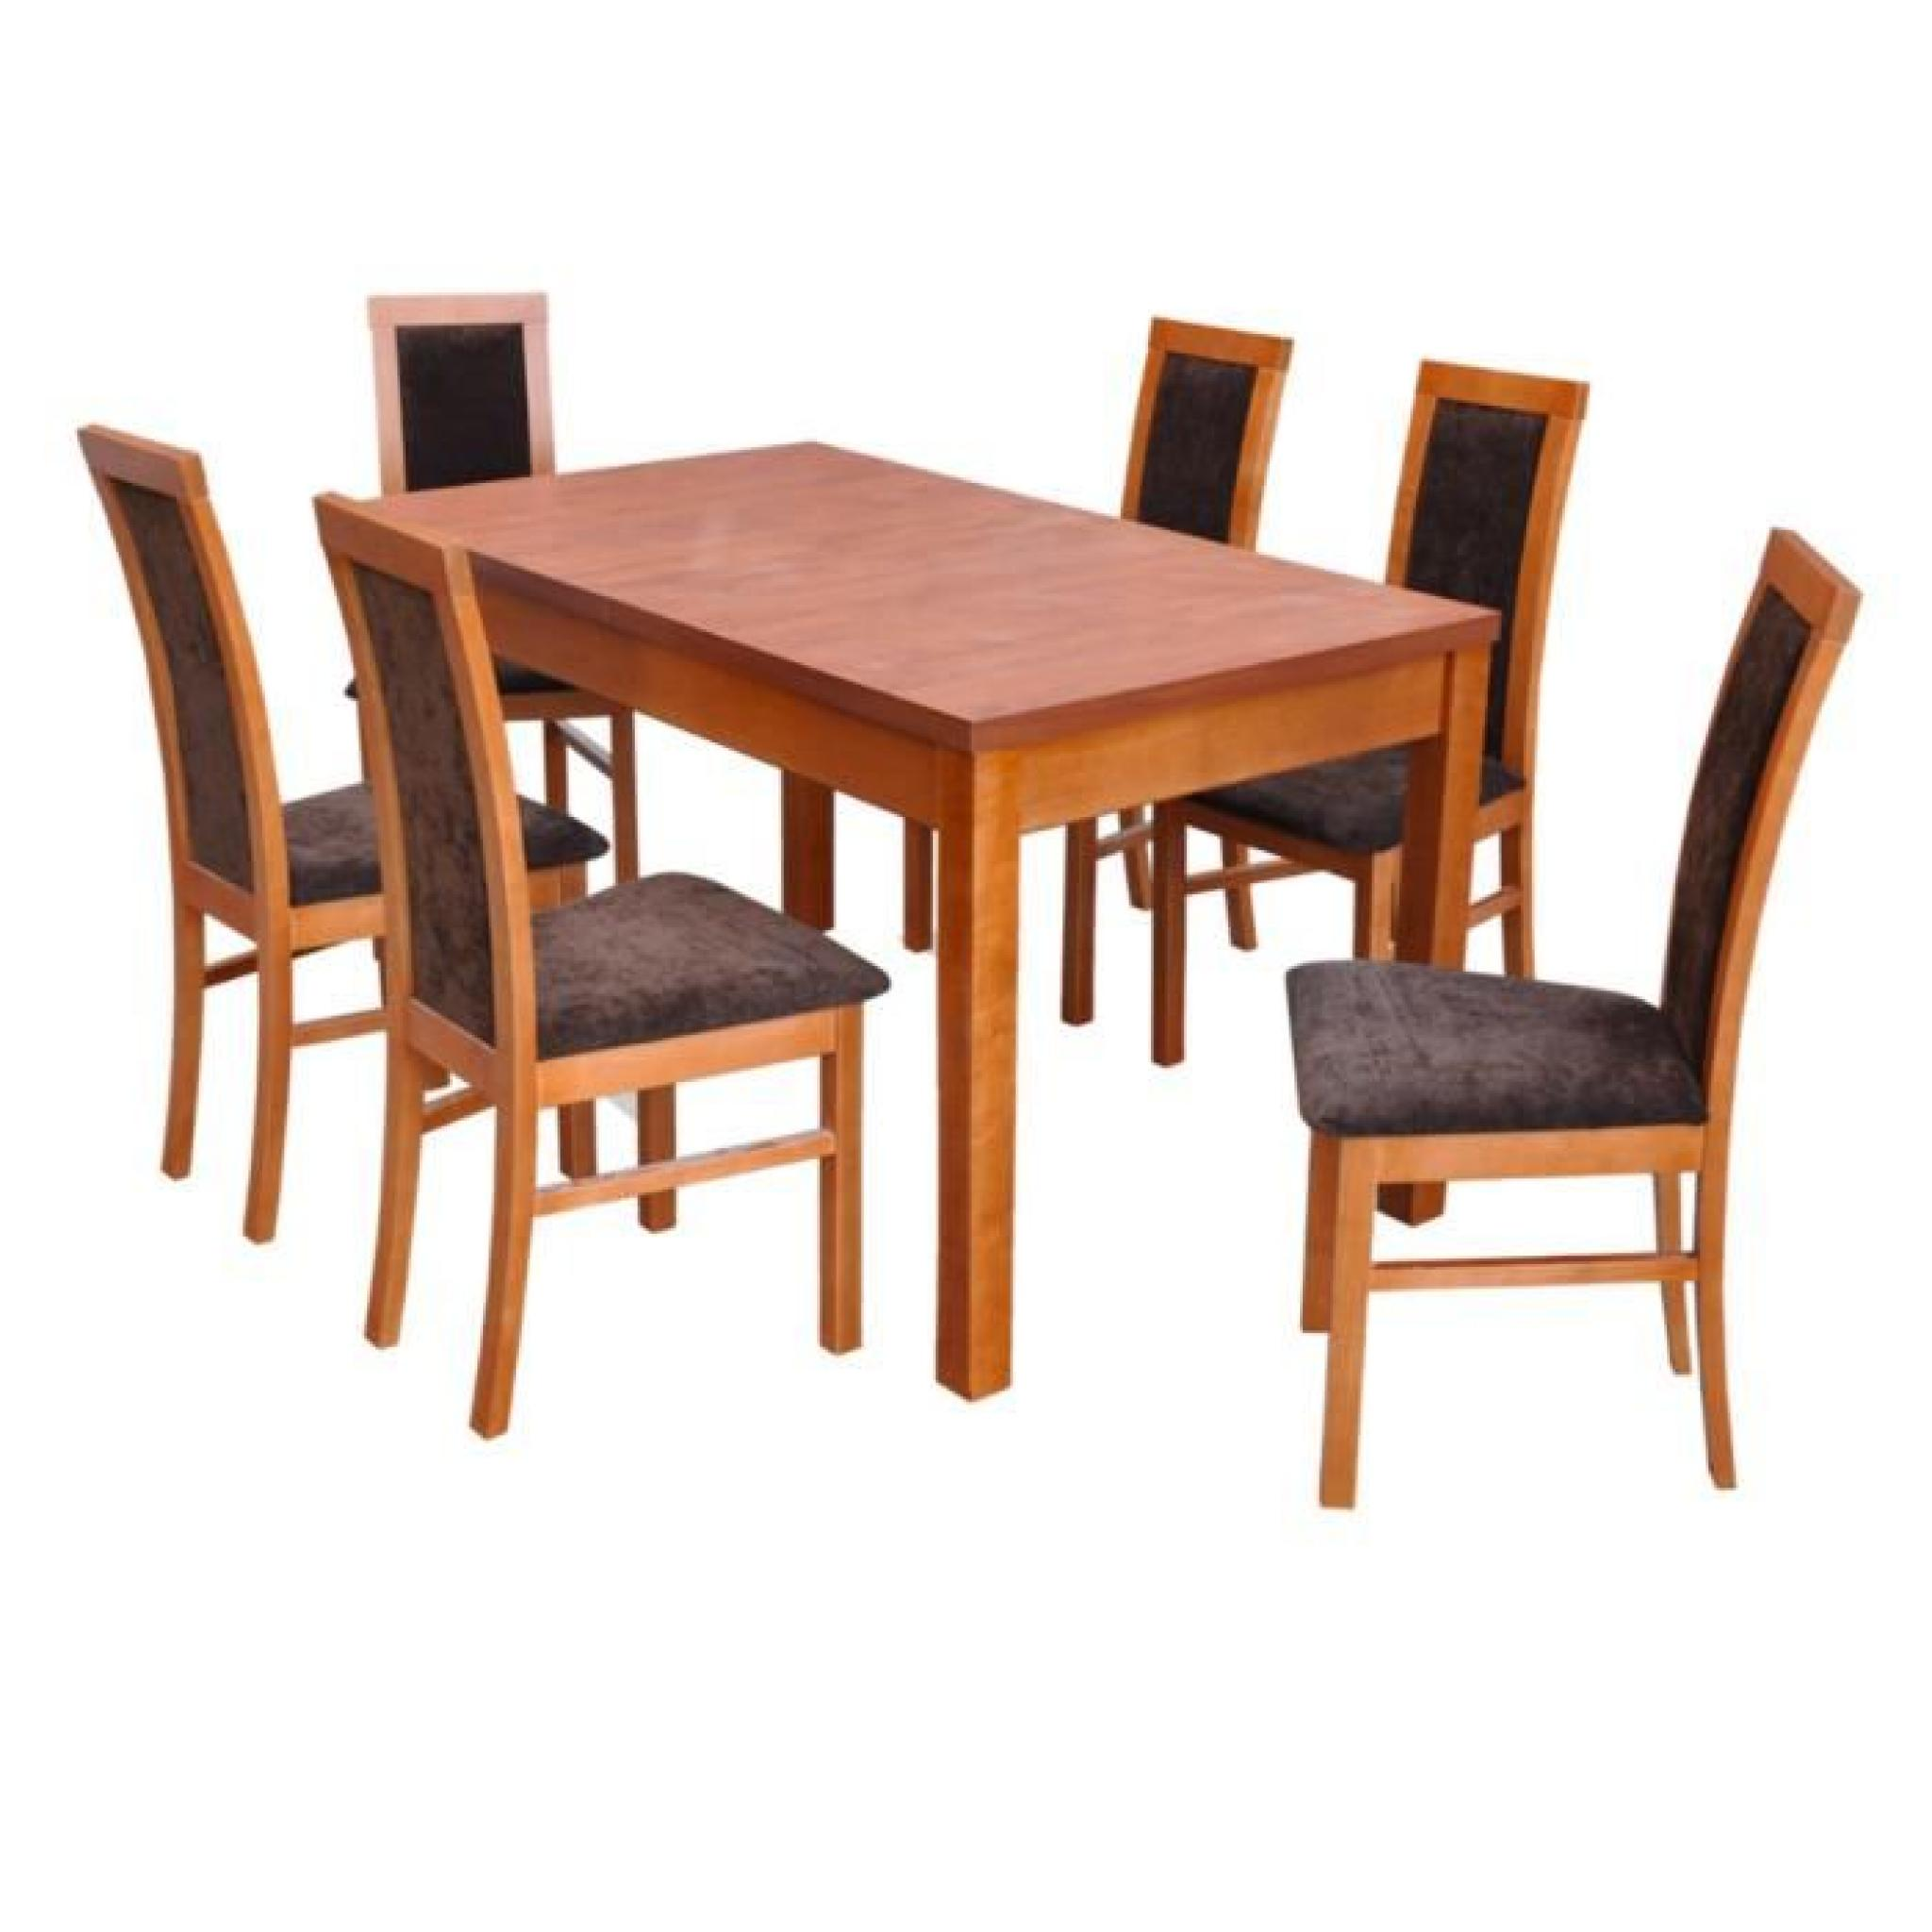 Ensemble table extensible et 6 chaises tablewood estrella for Ensemble table 6 chaises pas cher